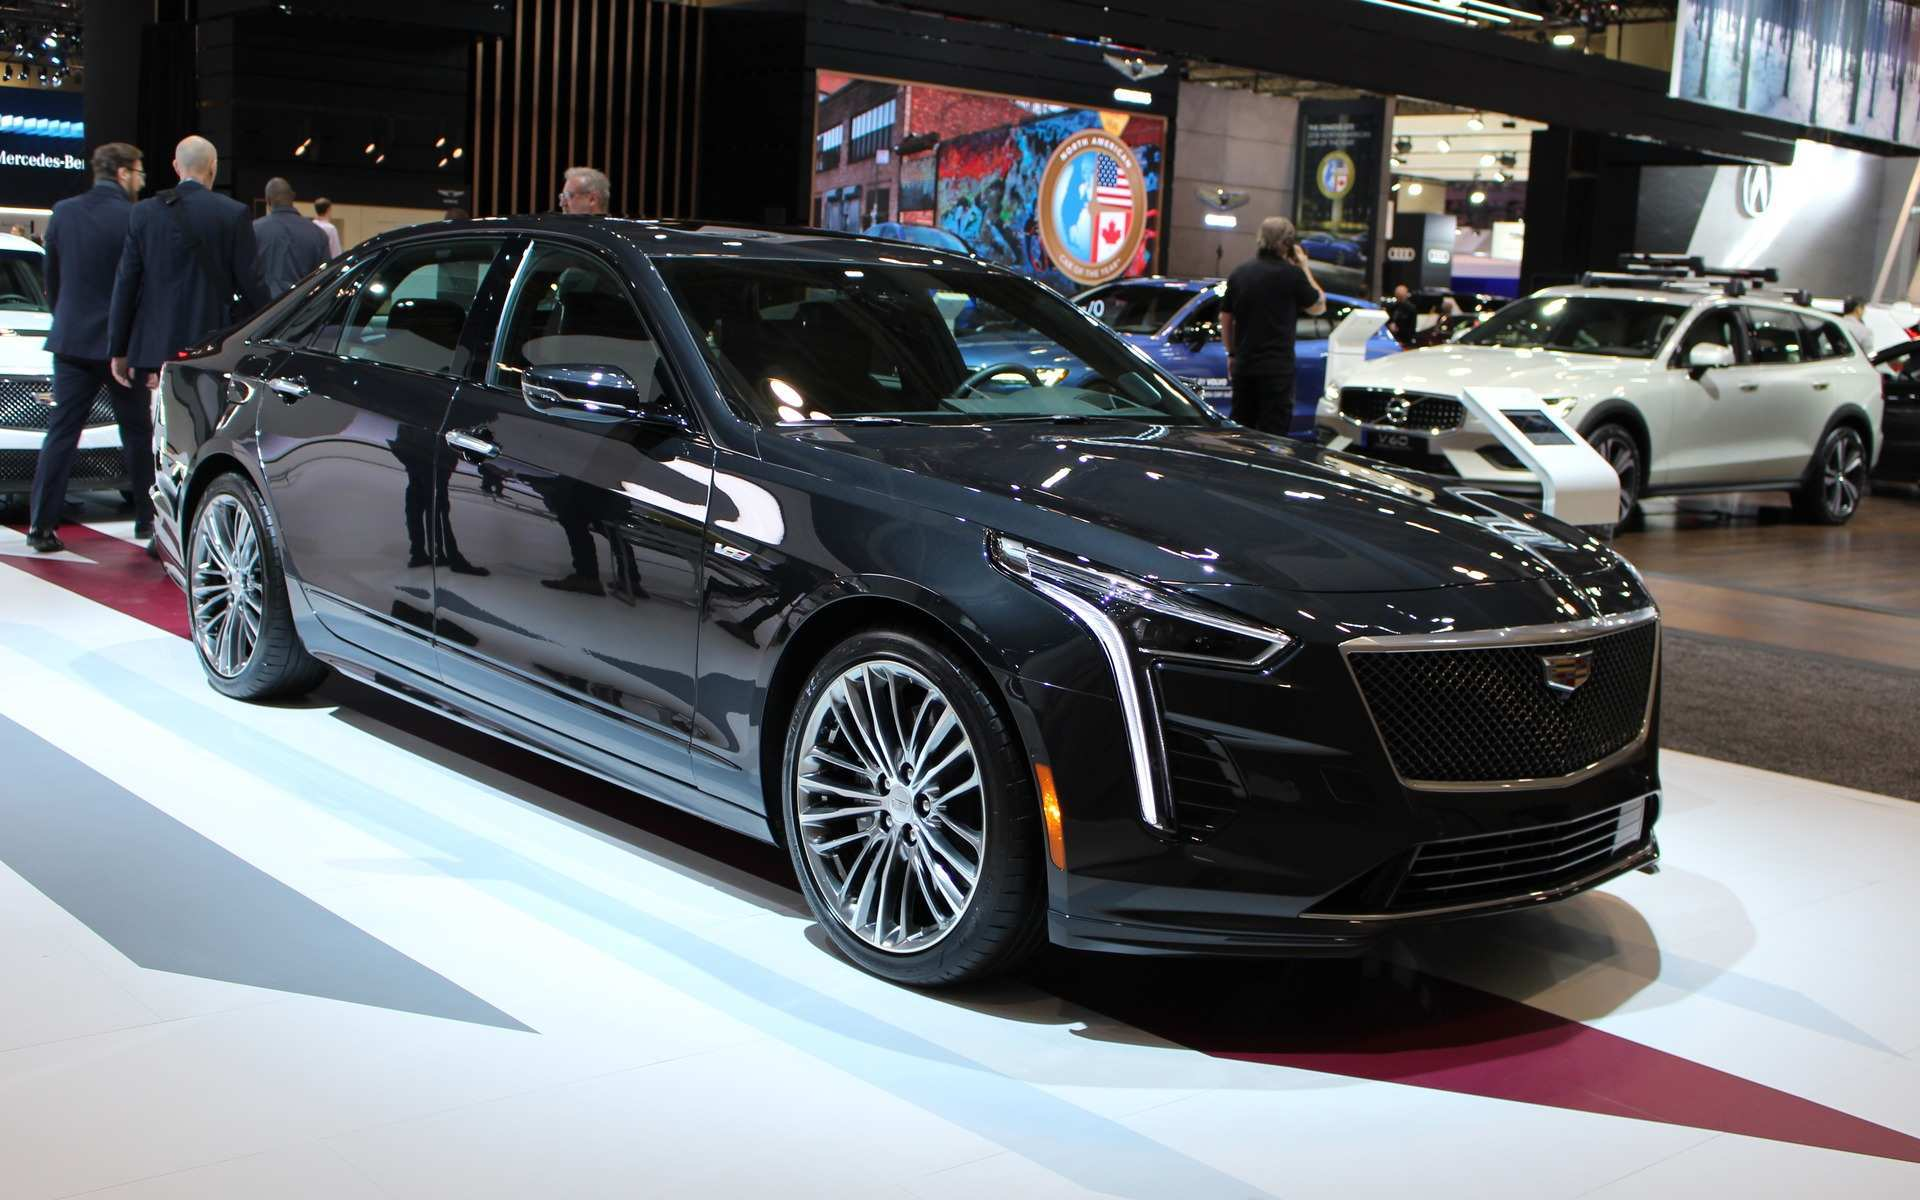 45 Great Cadillac Ct6 2020 Pictures for Cadillac Ct6 2020